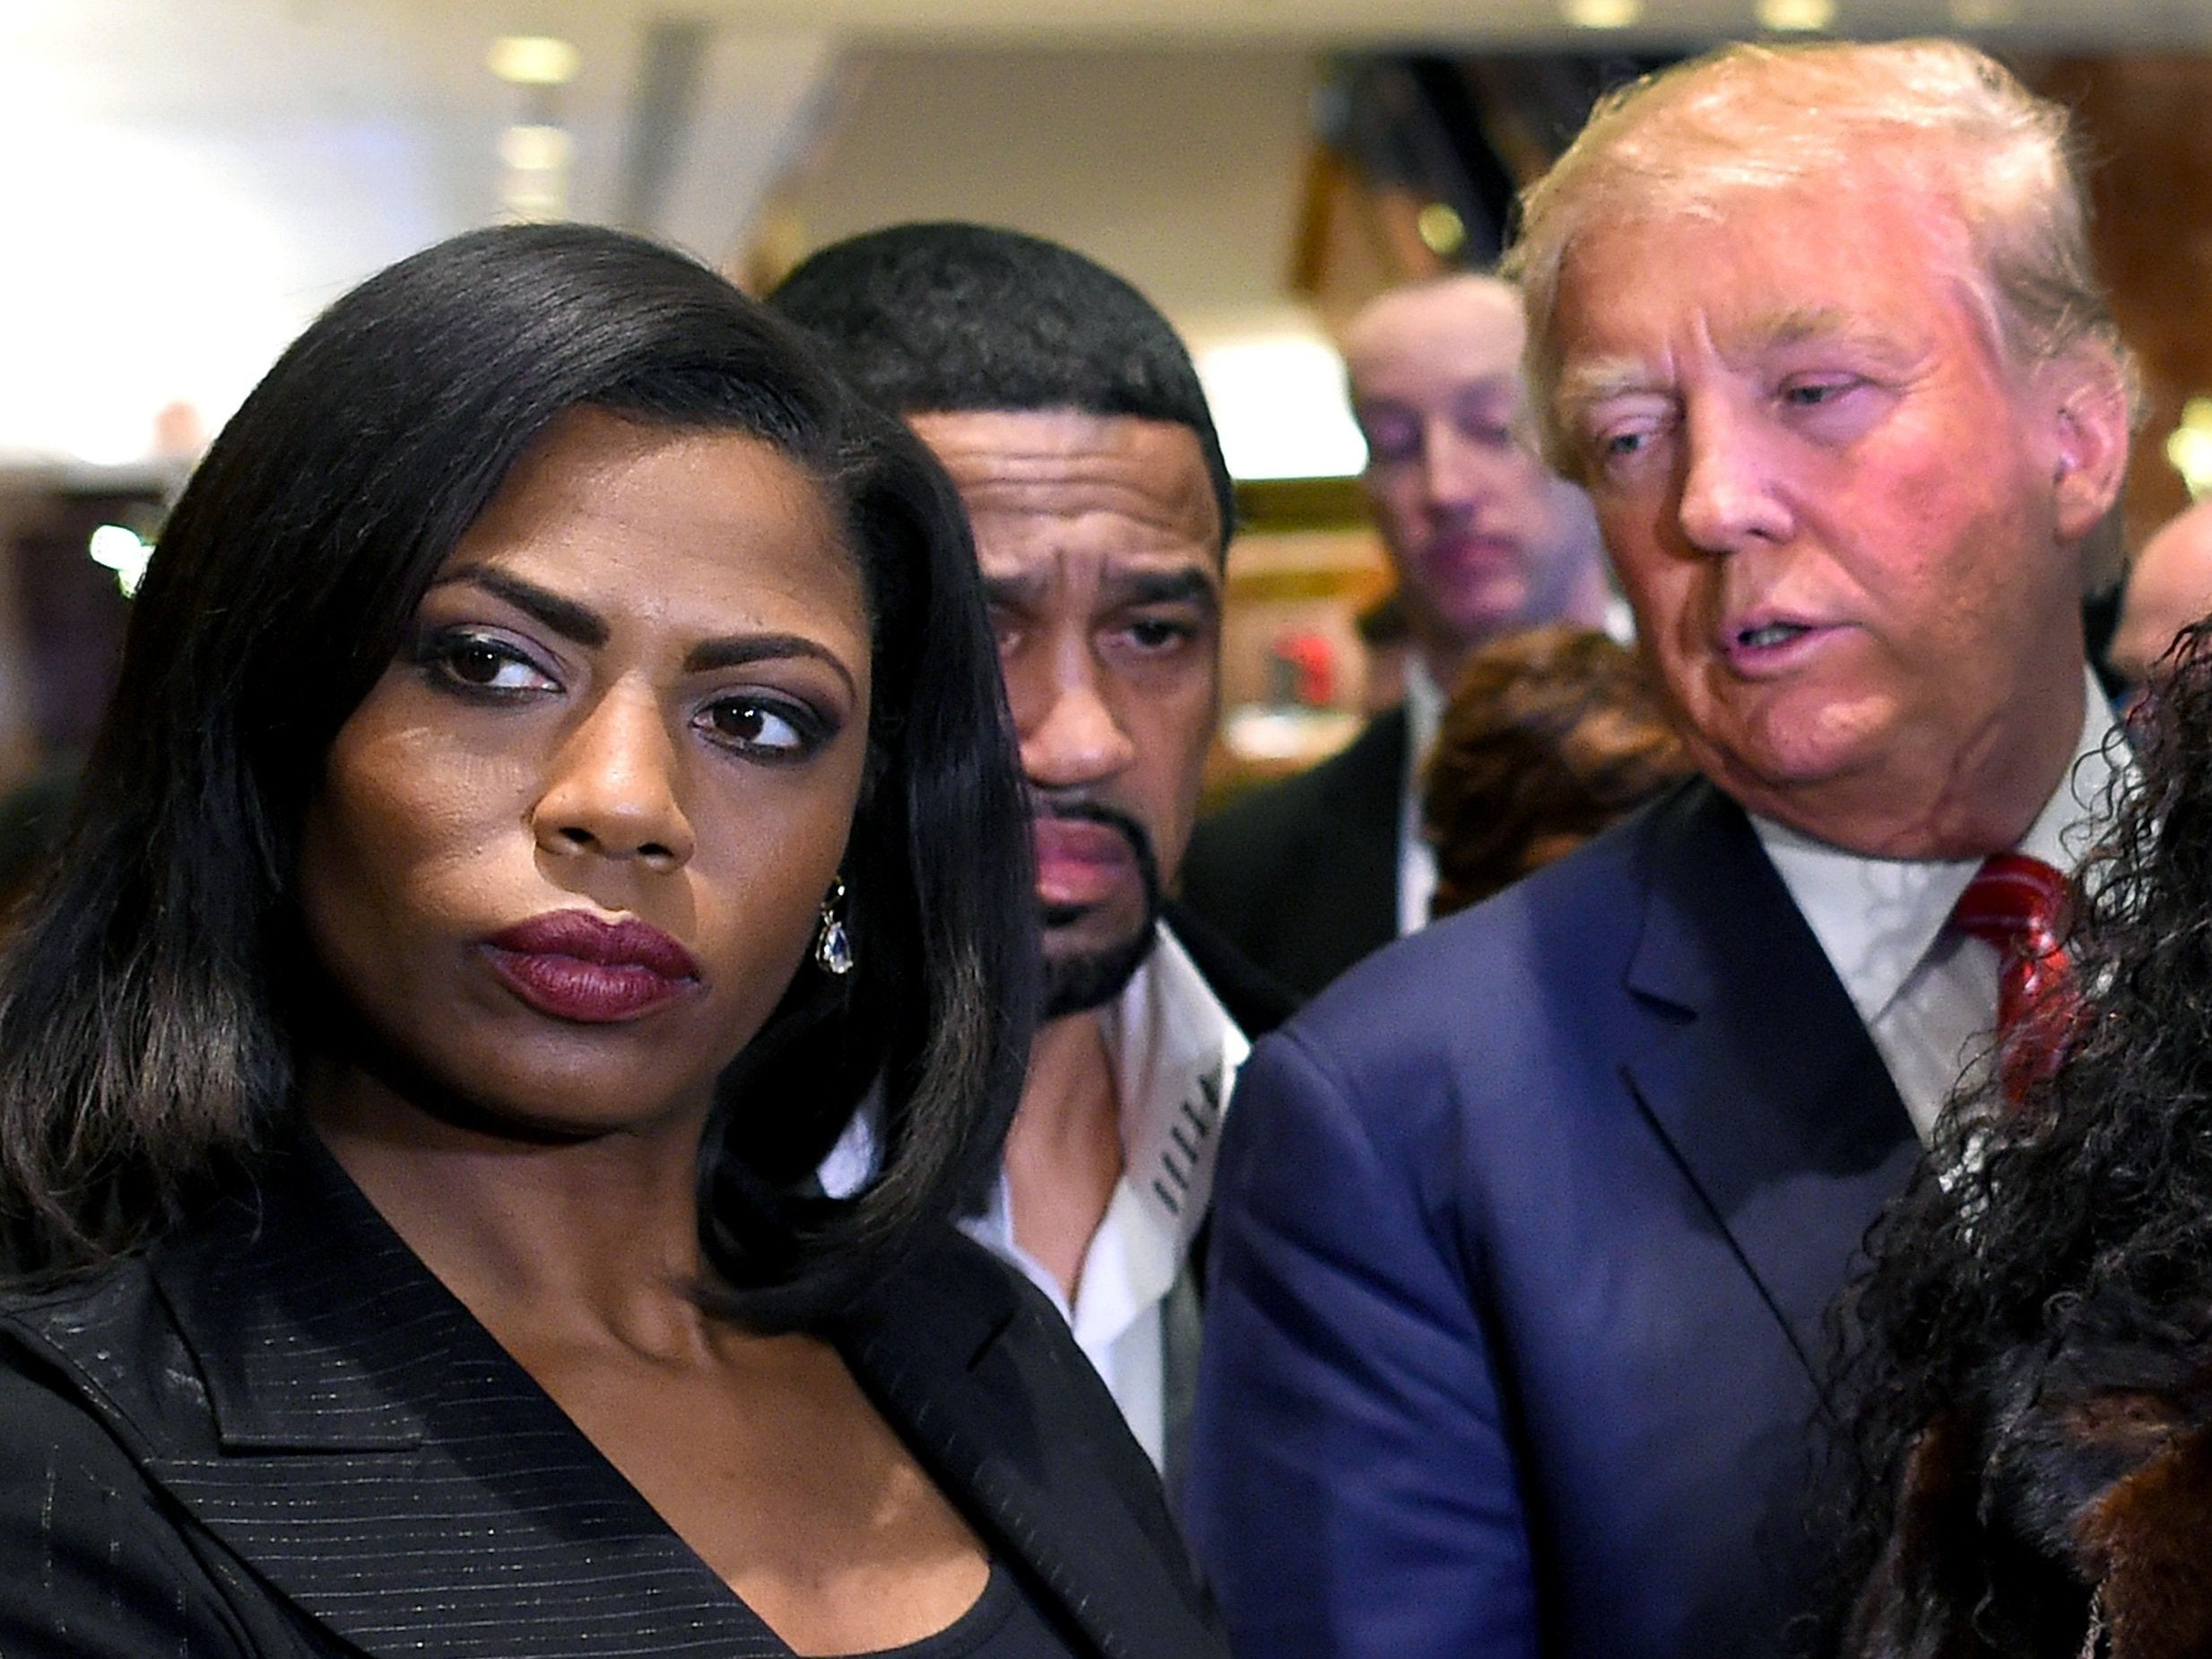 Omarosa releases new tape claiming Lara Trump offered her campaign position as 'hush money'